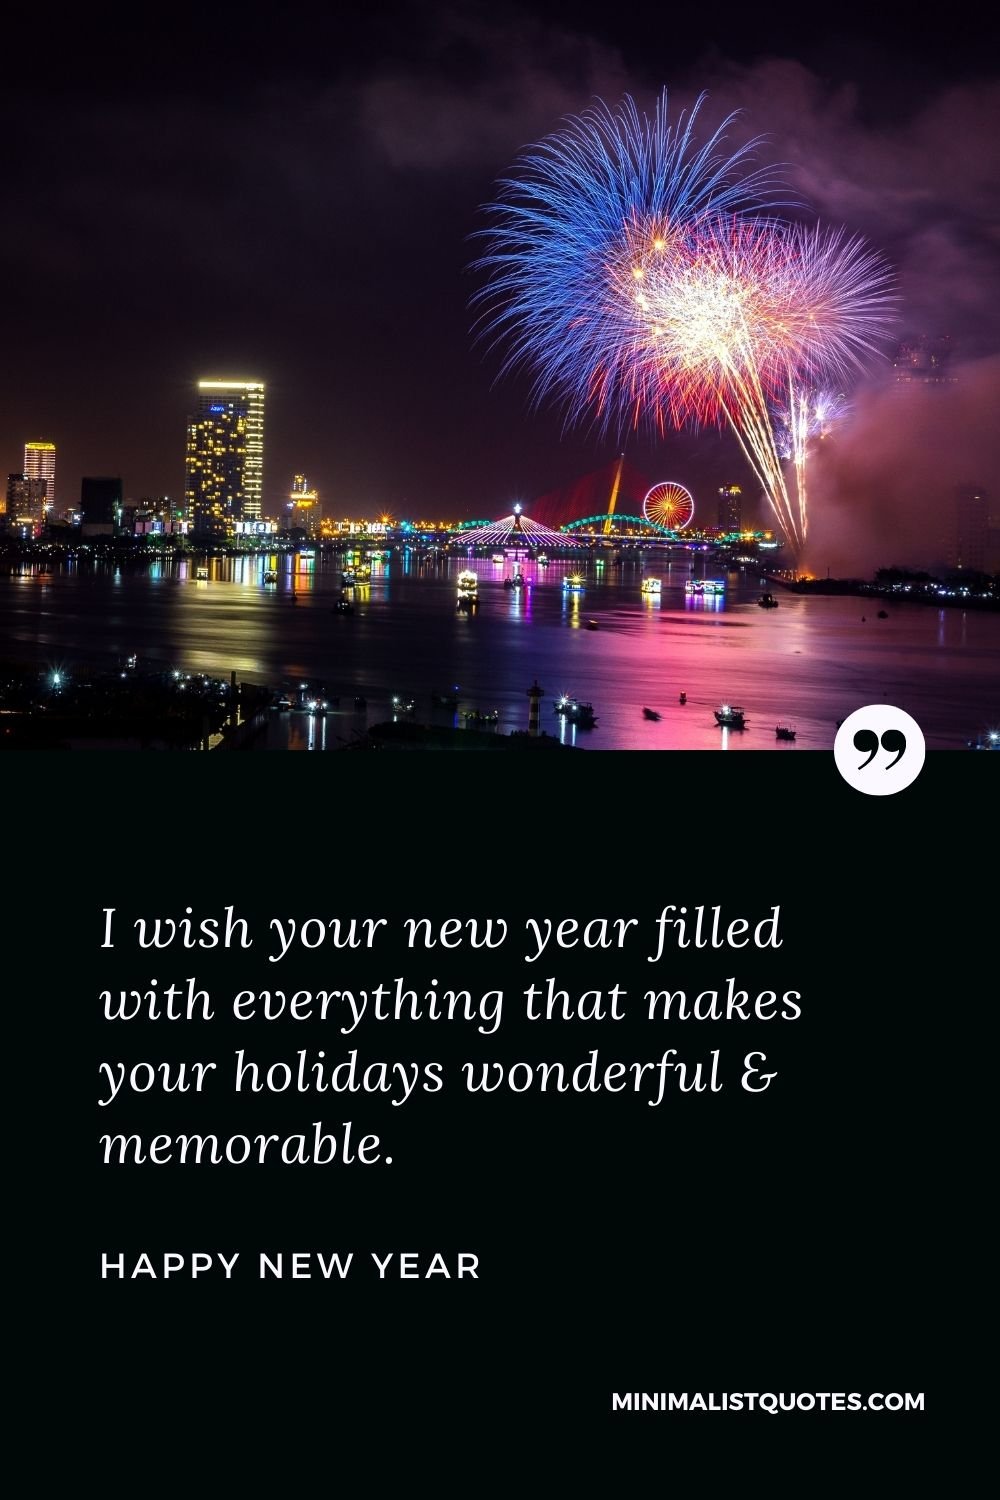 New Year Wish - I wish your new year filled with everything that makes your holidays wonderful & memorable.